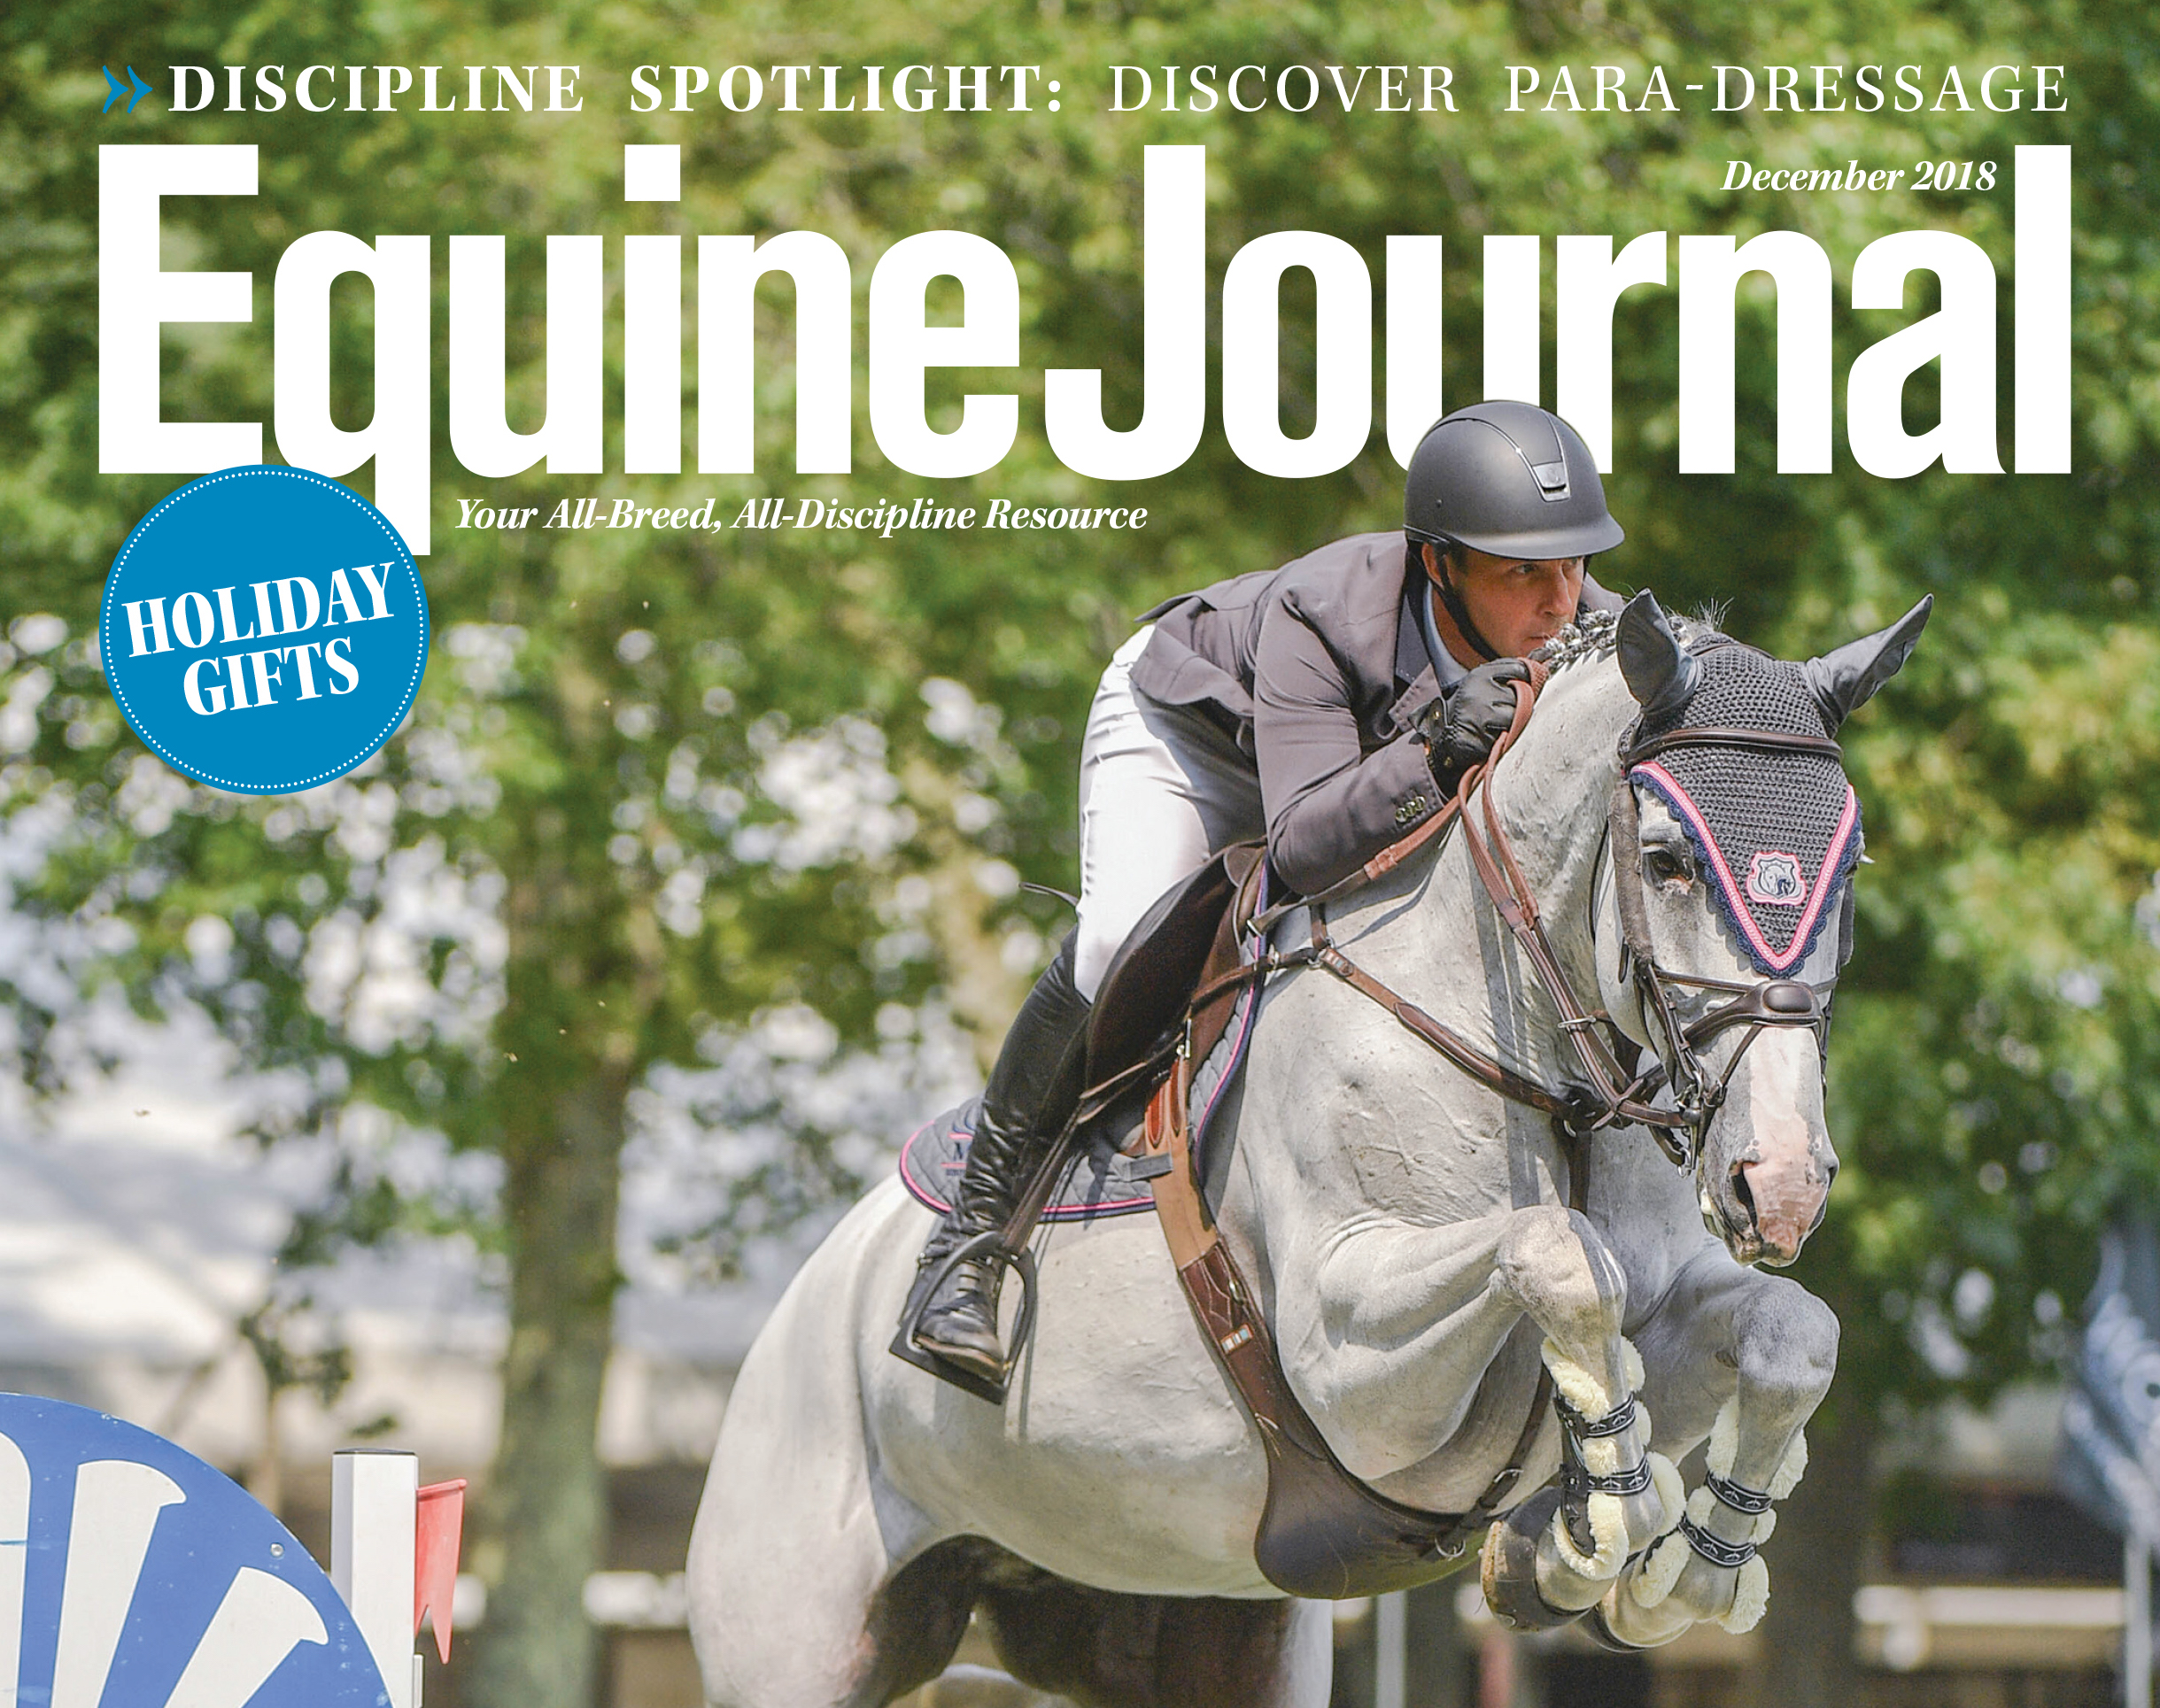 Equine Journal Includes Fauna Care in Holiday Wish List